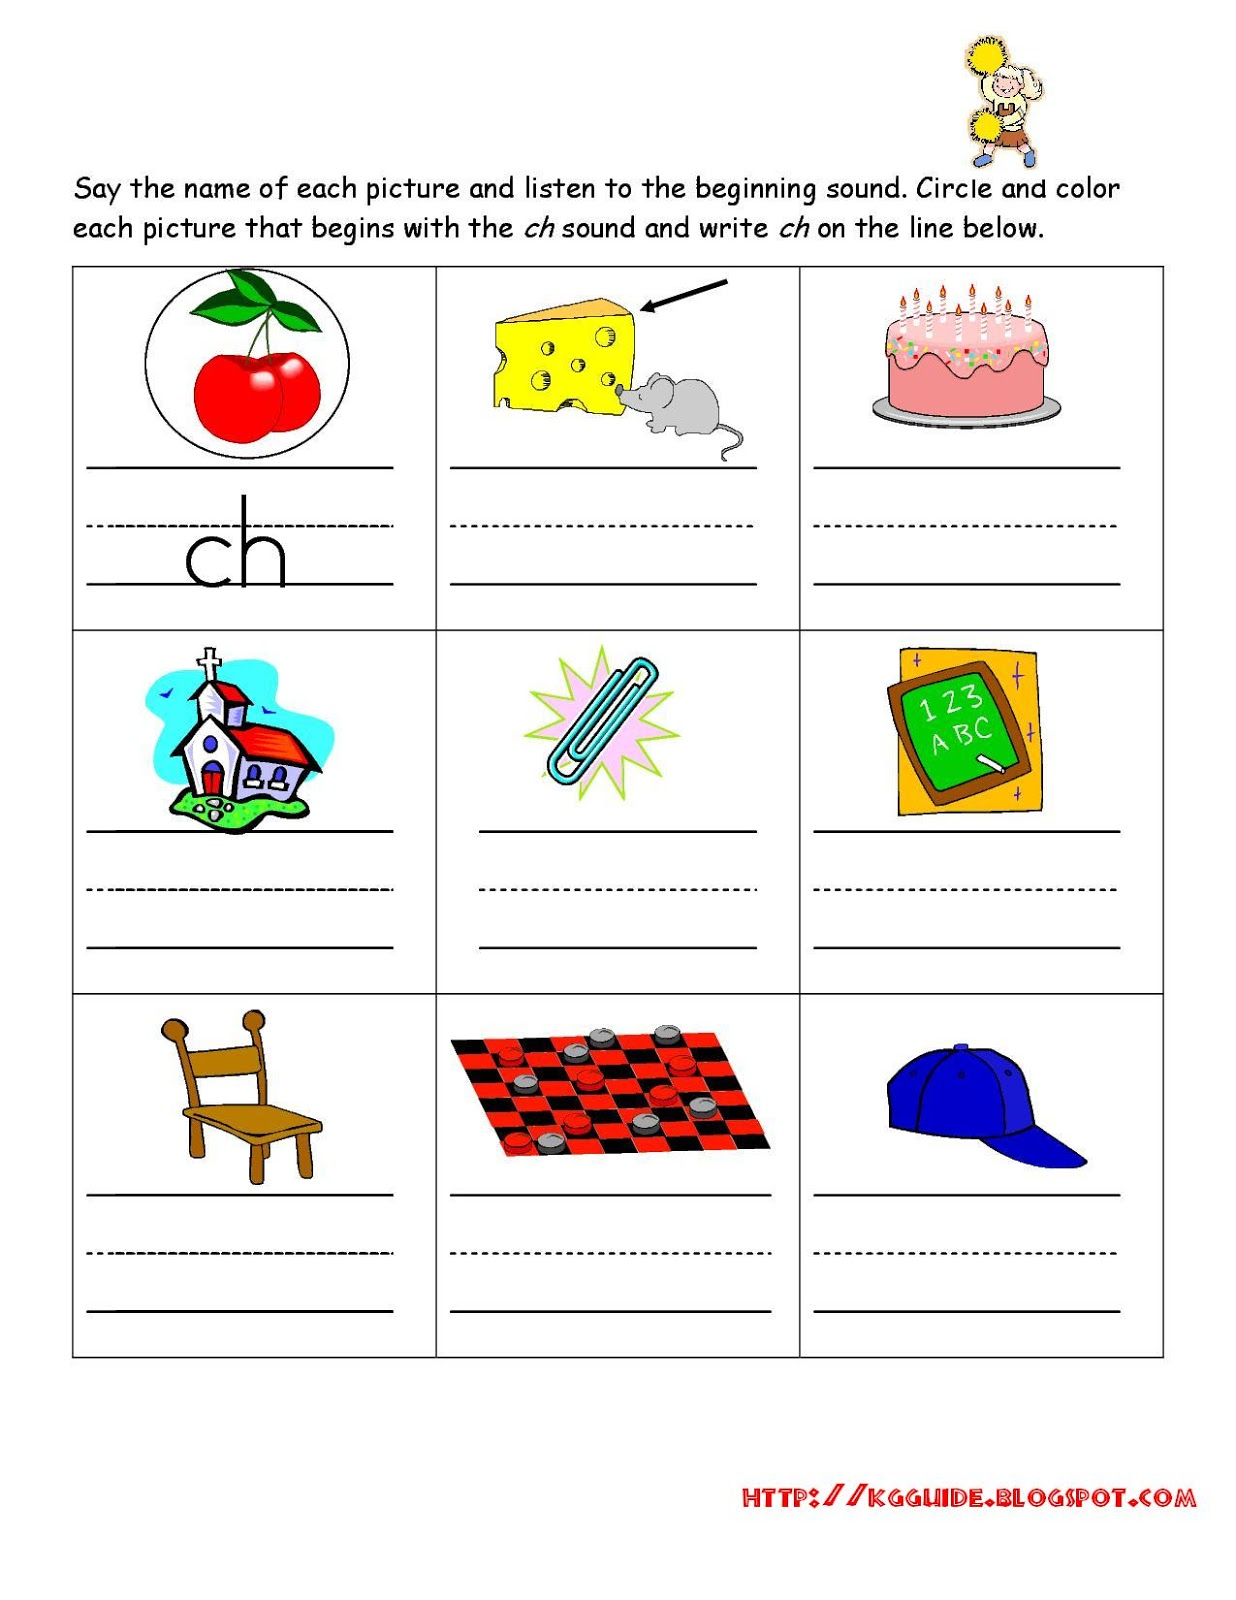 worksheet Weather Worksheets For Kindergarten kindergarten weather worksheets abitlikethis ch words worksheet for students kindergarten